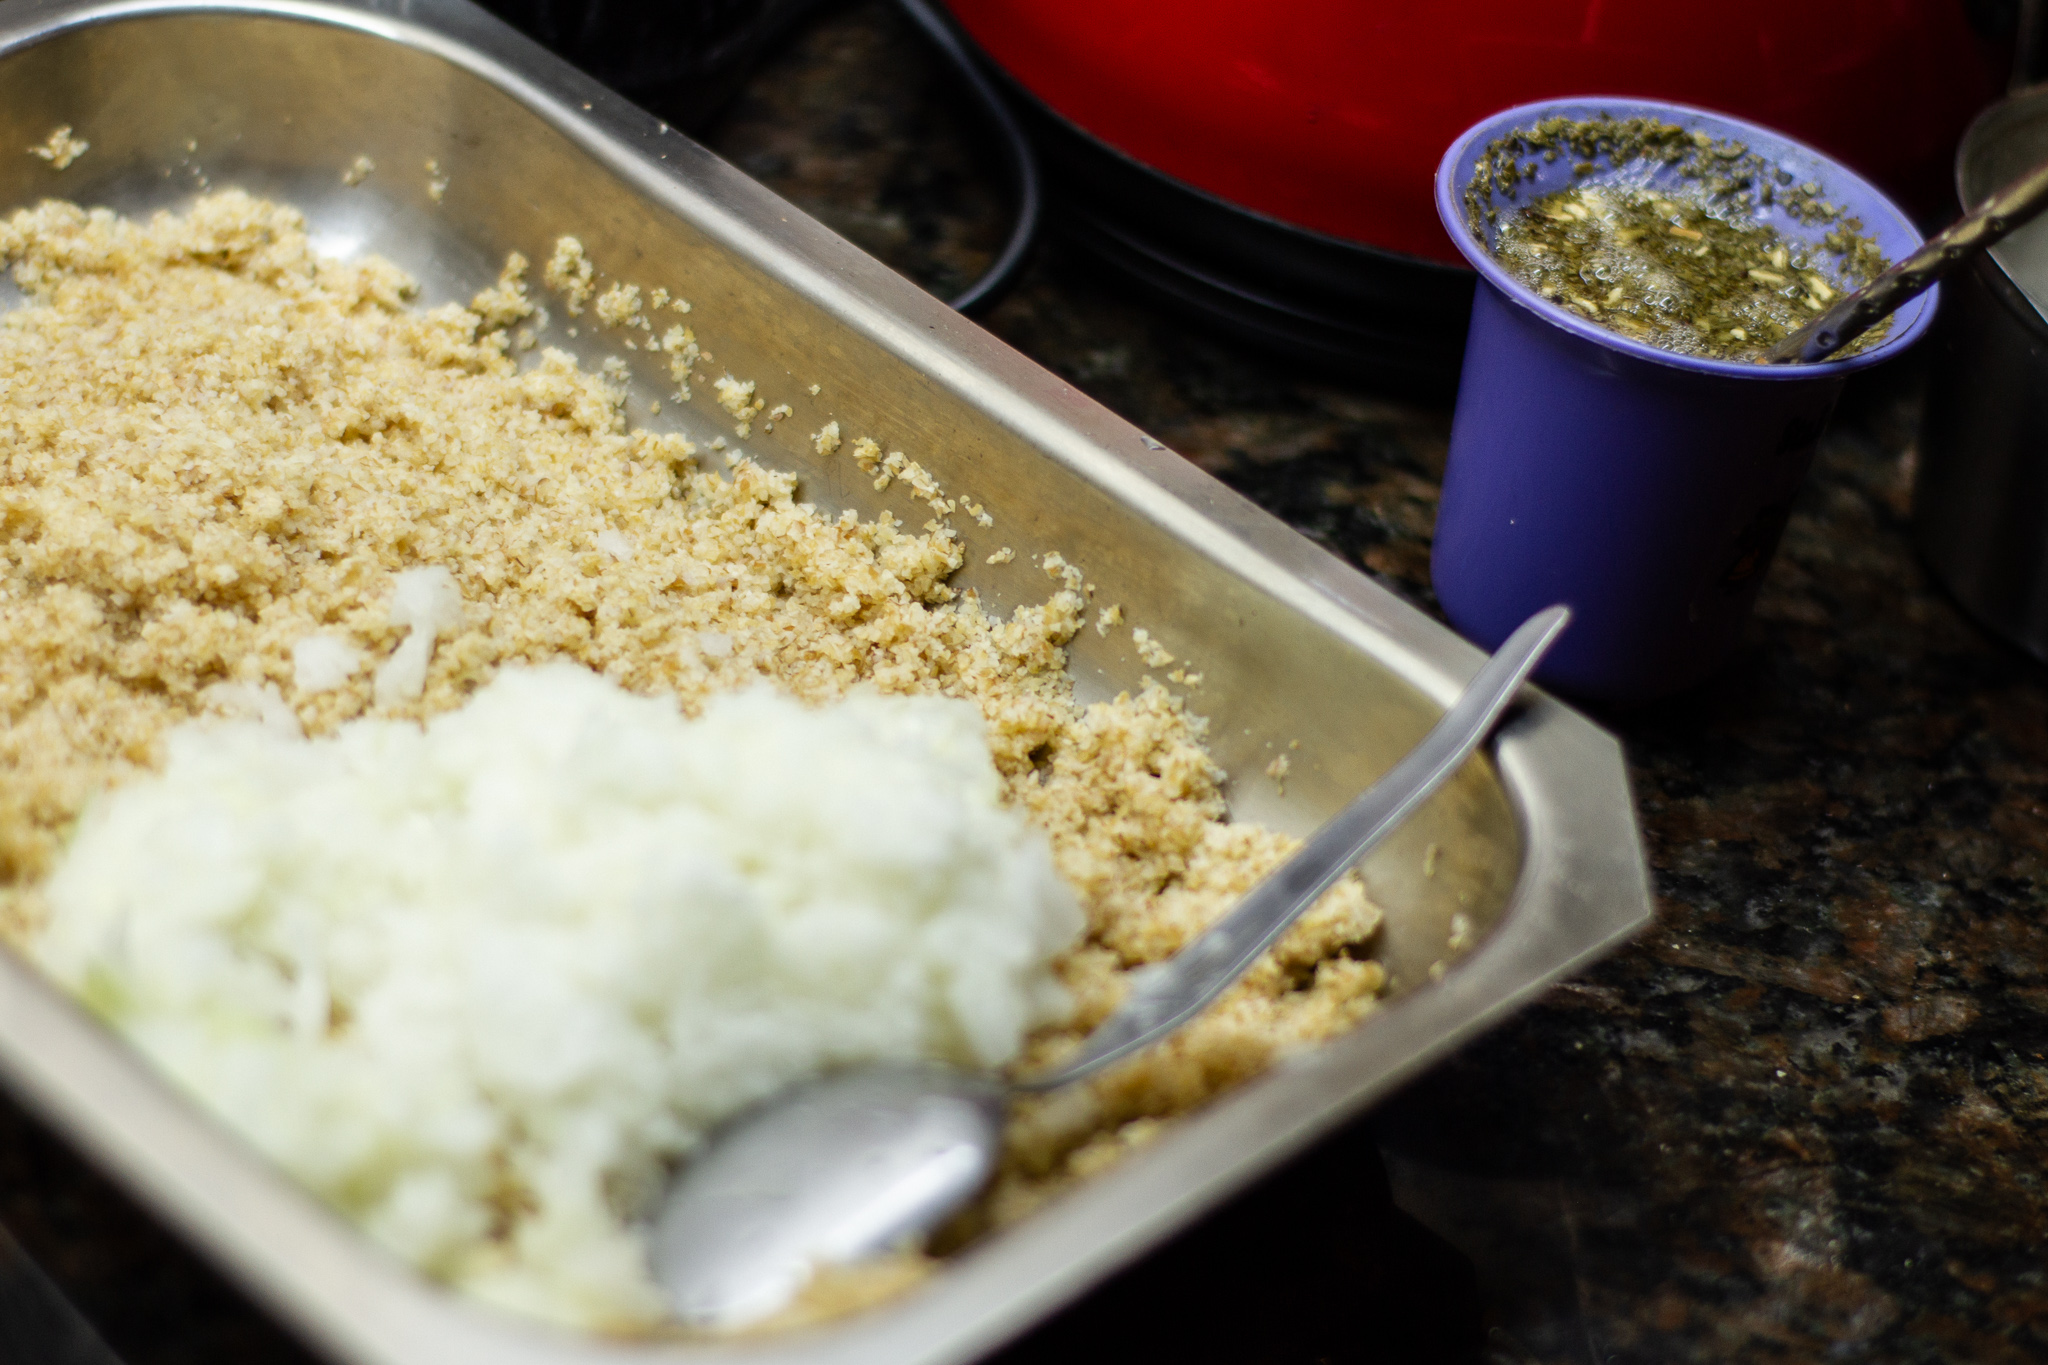 Soaked and drained bulgur with grated onion, mate alongside.